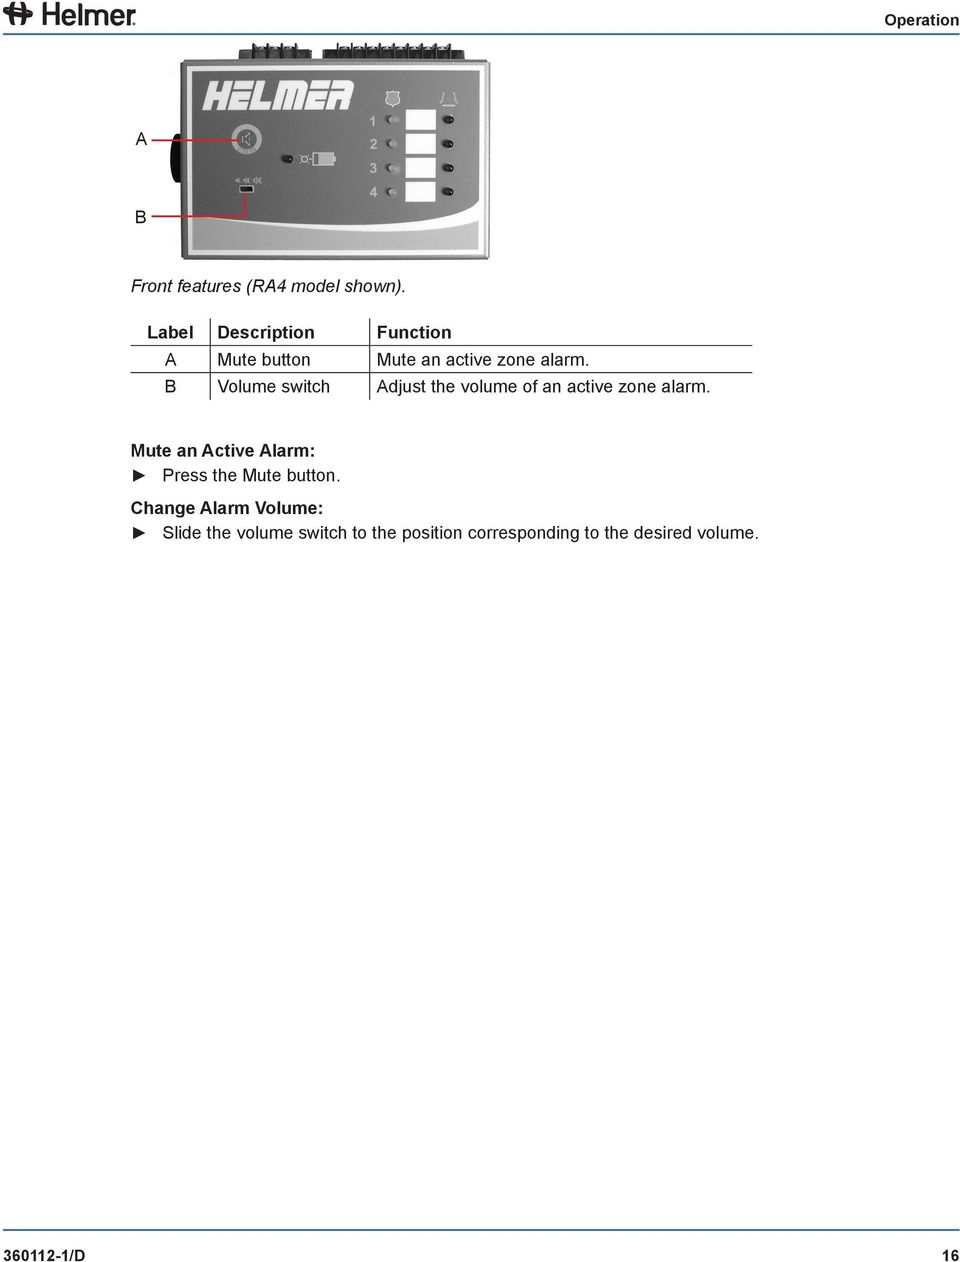 B Volume switch Adjust the volume of an active zone alarm.